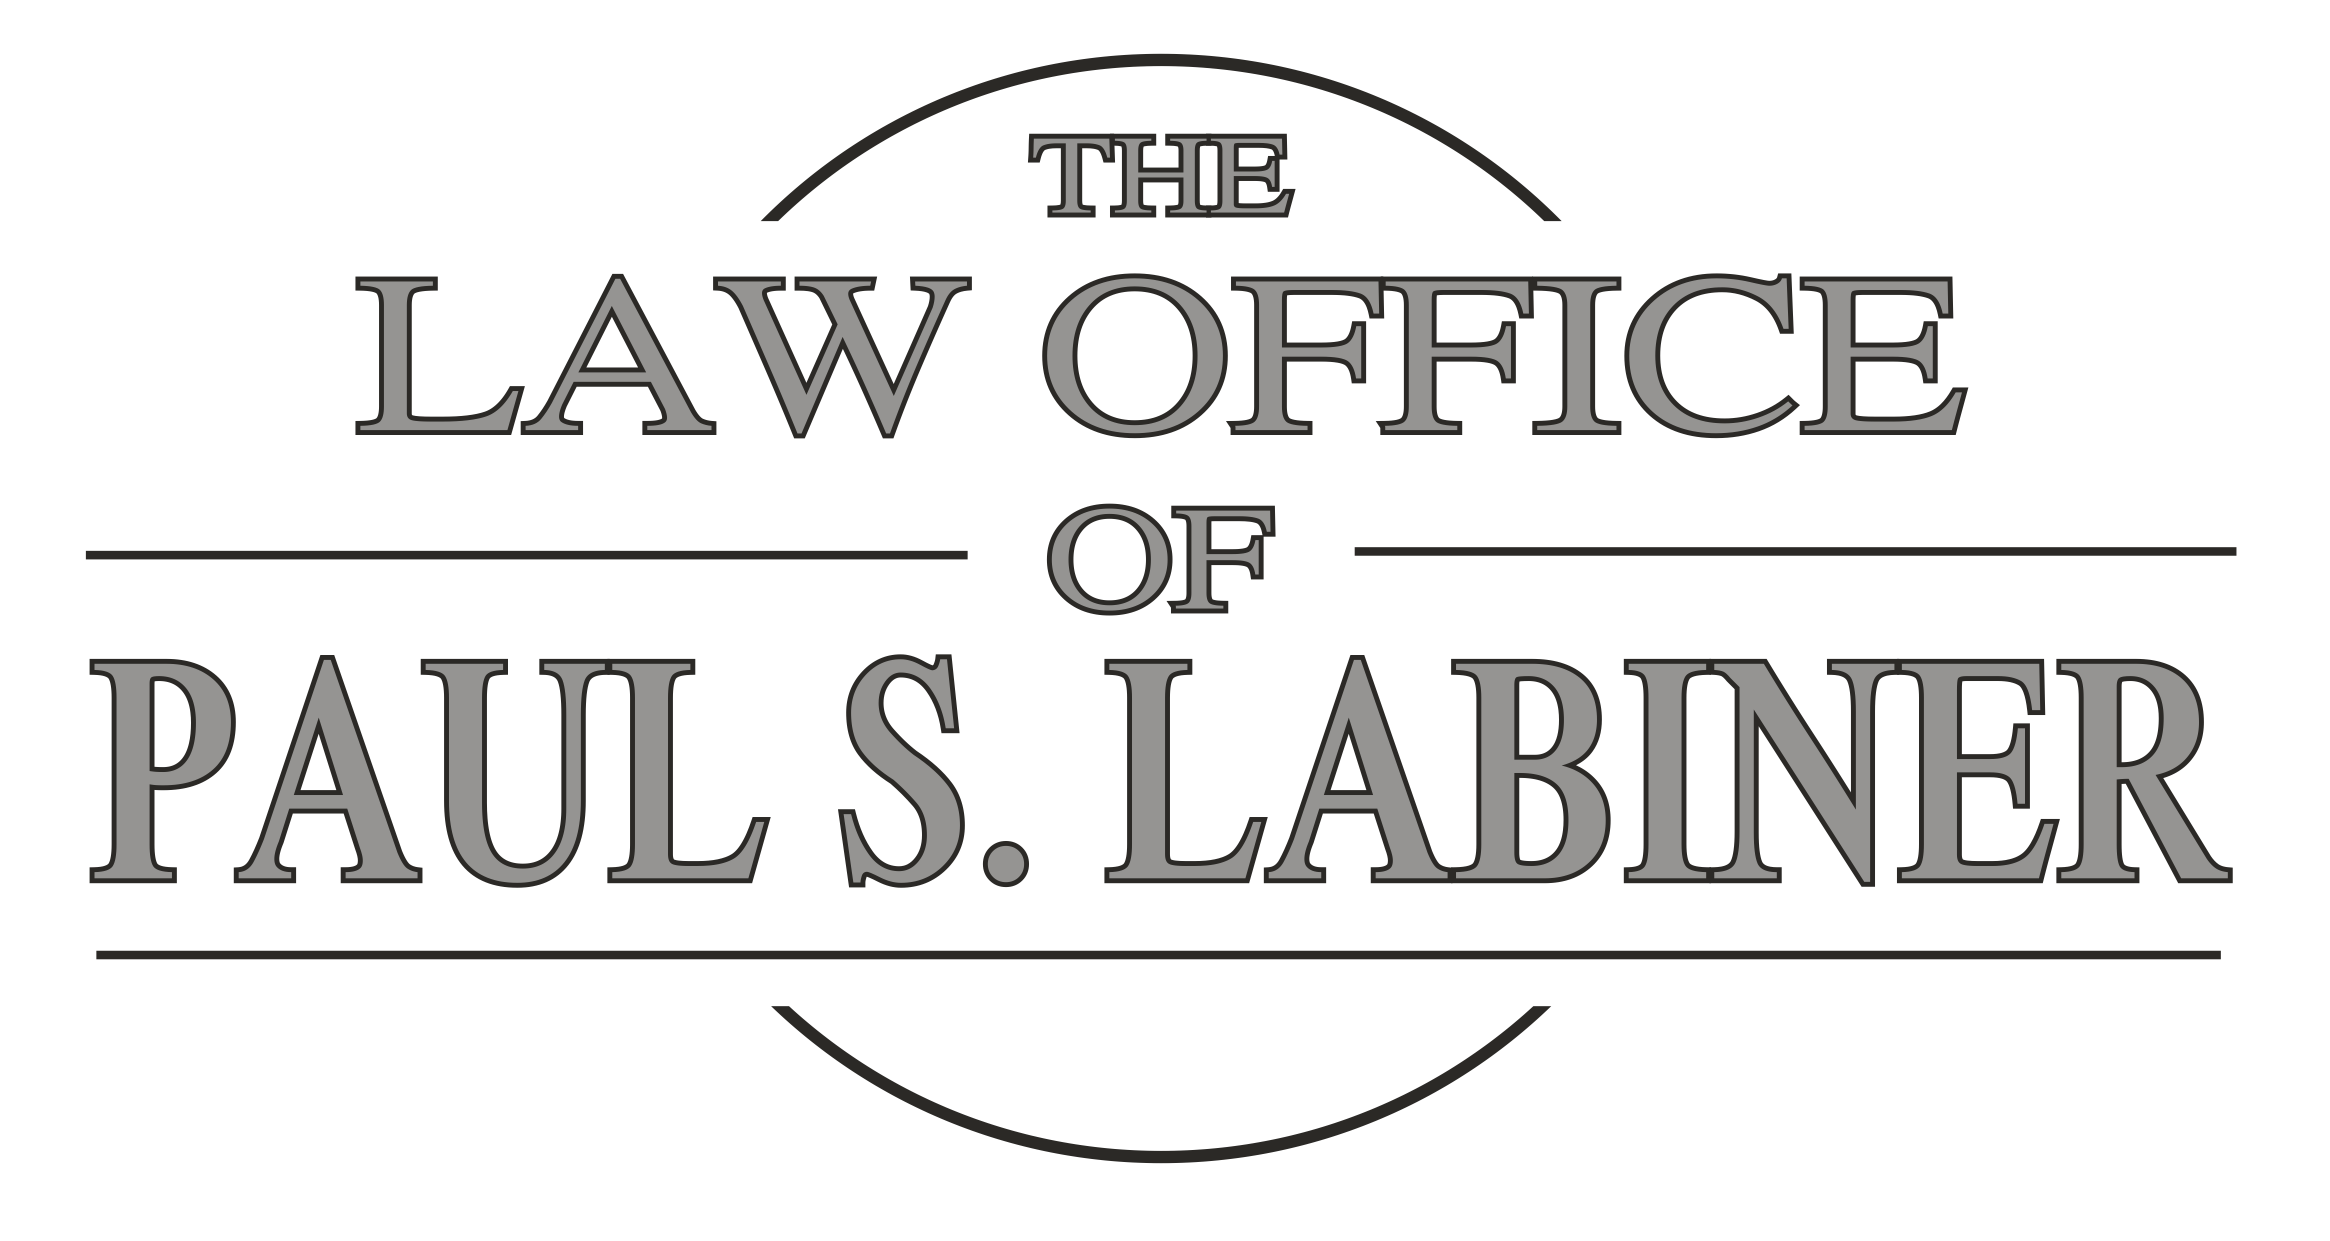 The Law Office of Paul S. Labiner, P.A.